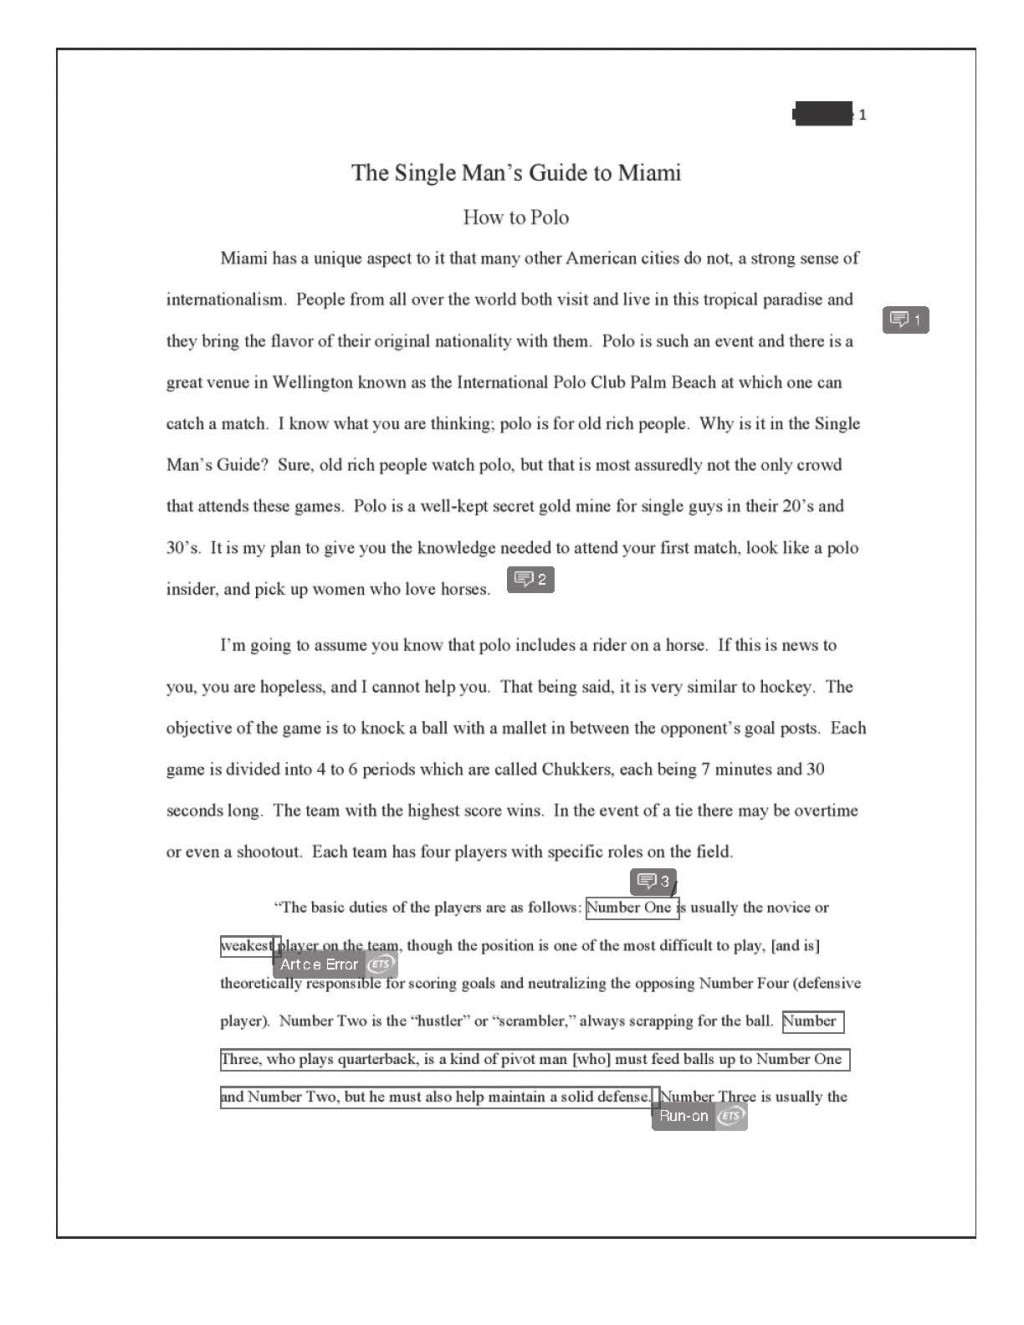 007 Informative Essay Kinds Of Writing Types Essays The Center In Hindi Final How To Polo Redacted P Pdf Task Slideshare Ppt Withs Wikipedia Dreaded Prompts 5th Grade 9th Graphic Organizer Large